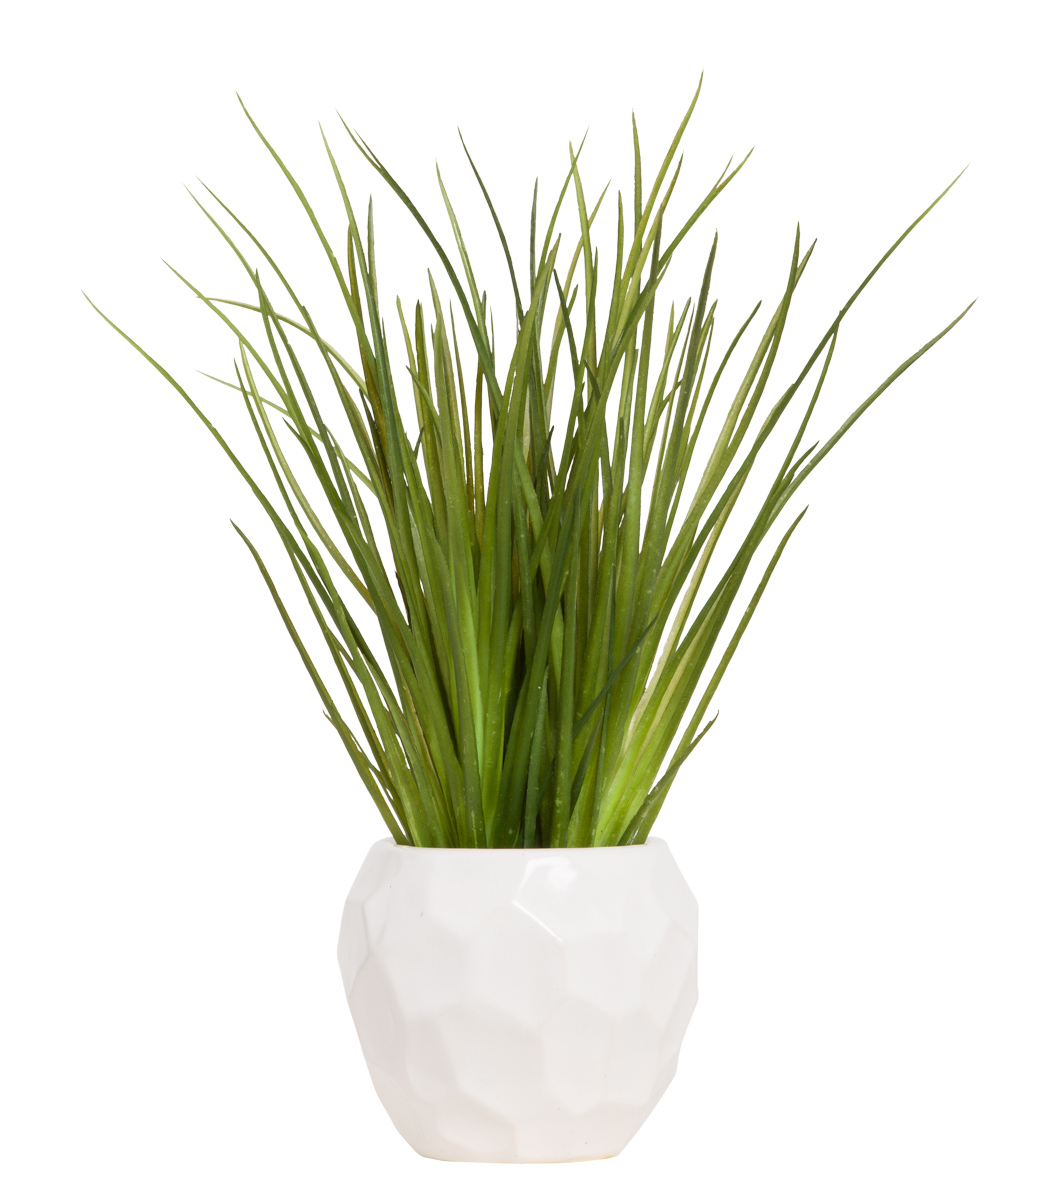 GRASS IN WHITE CHIP POT